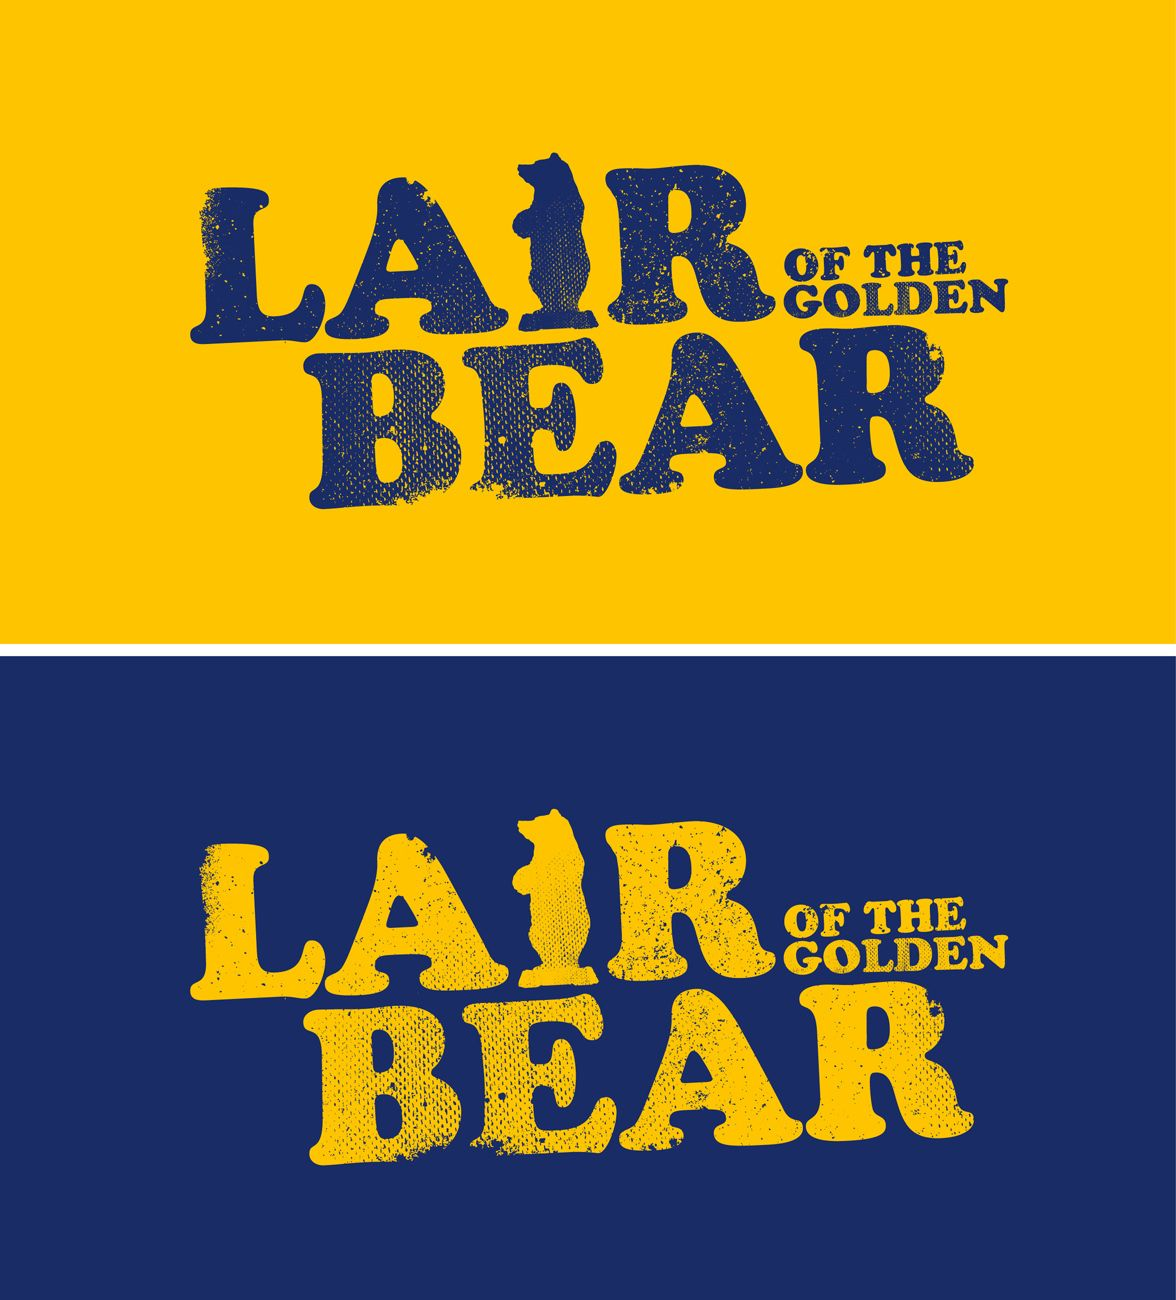 Shirt design needed - 03 05 2013 T Shirt Design For Lair Of The Golden Bear By Hairyyeti